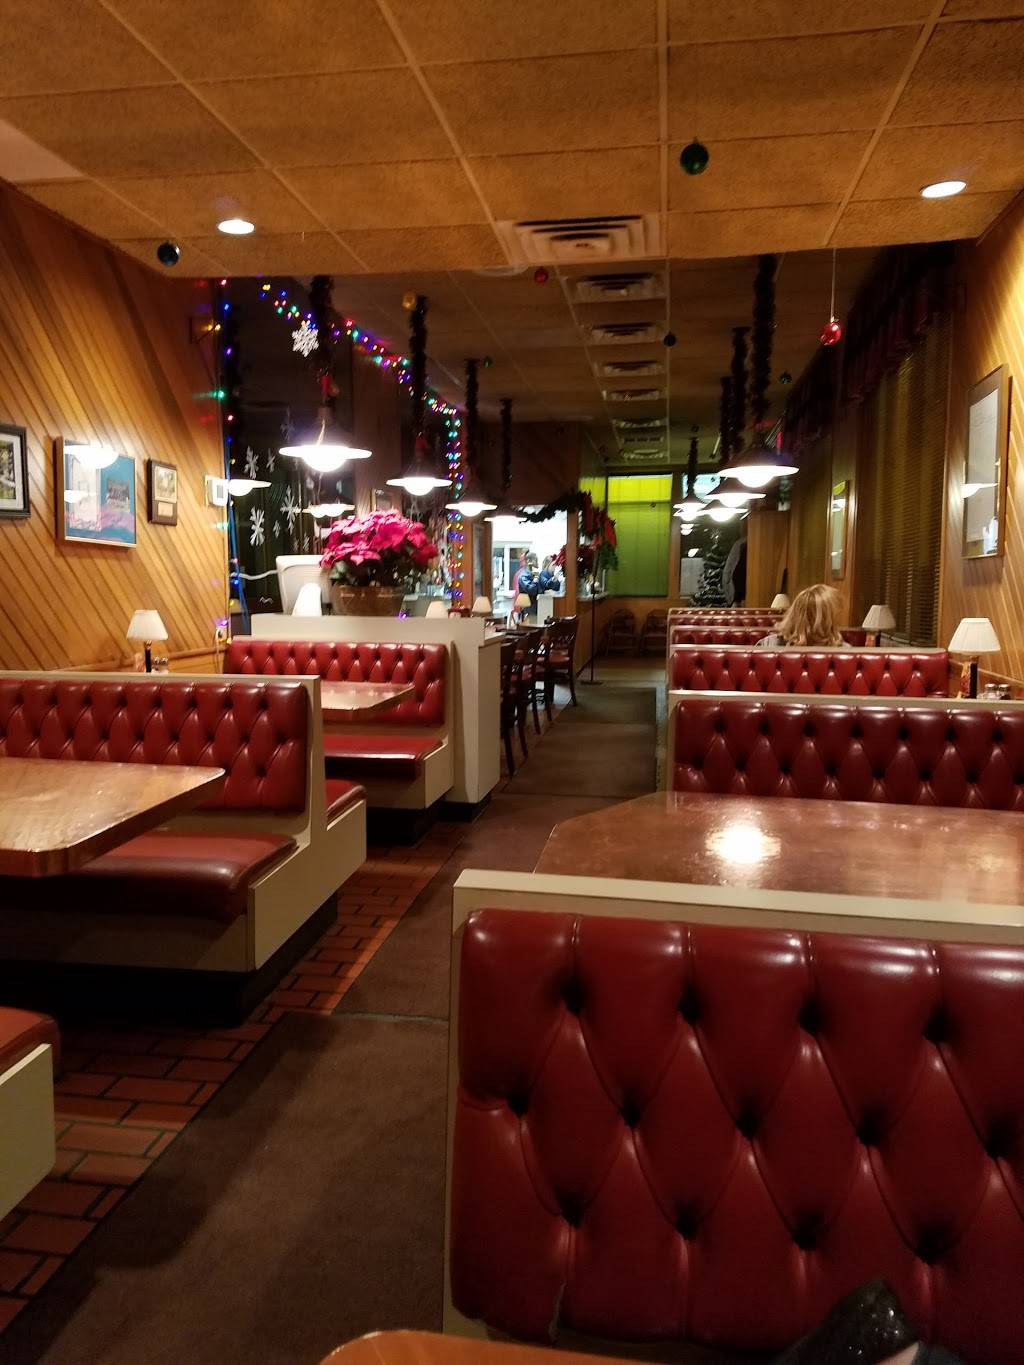 Rizzis | restaurant | 2809 Copley Rd, Copley, OH 44321, USA | 3306682626 OR +1 330-668-2626